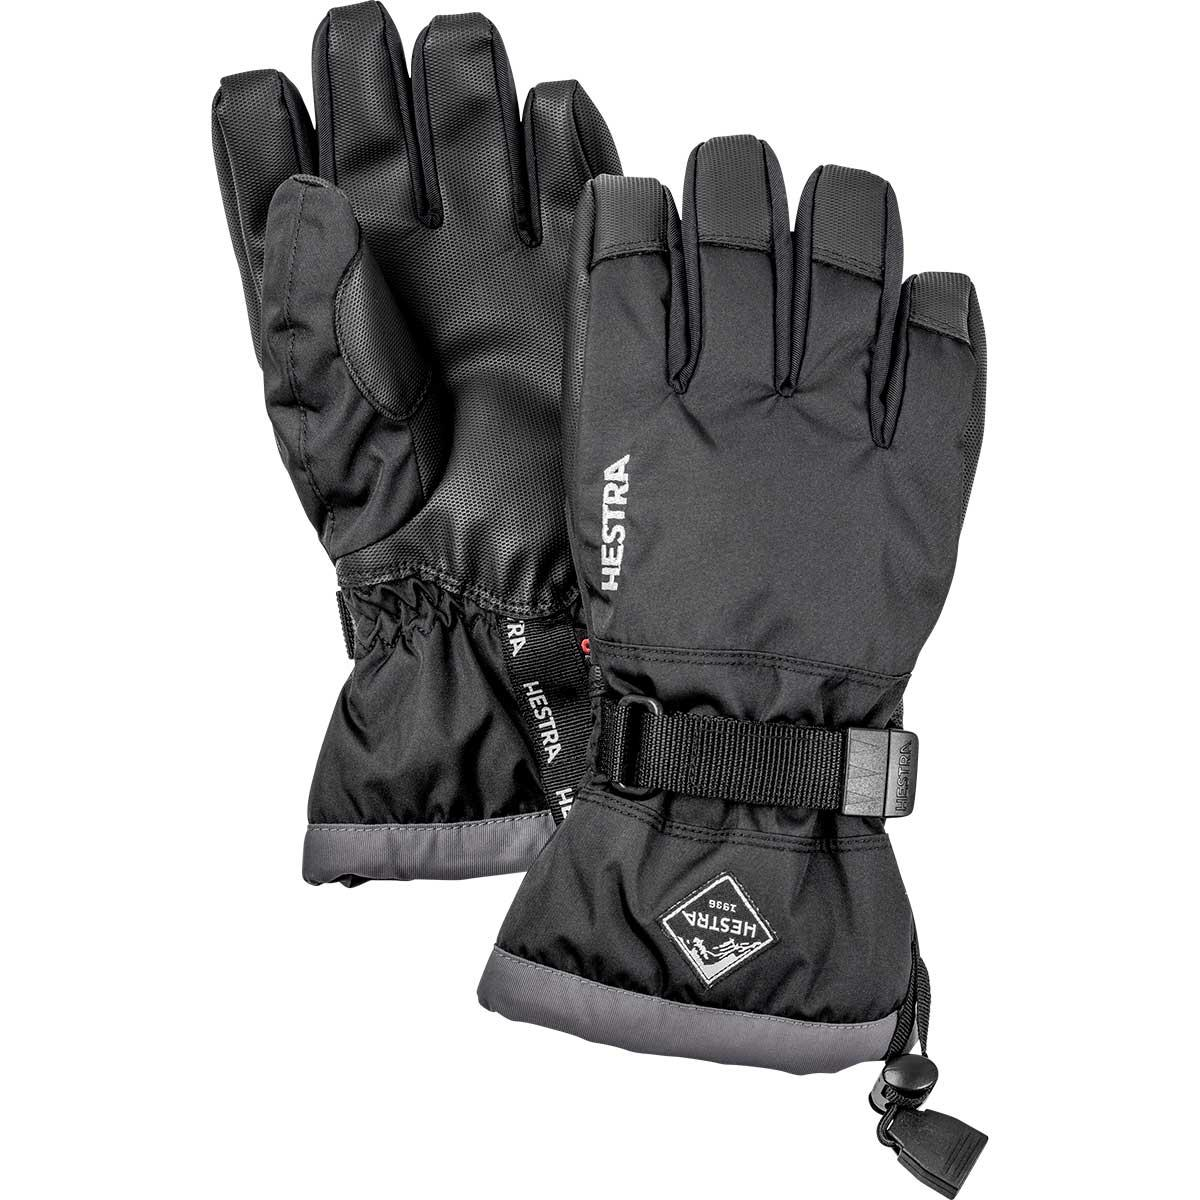 Hestra Junior Gauntlet CZone Glove in black and graphite